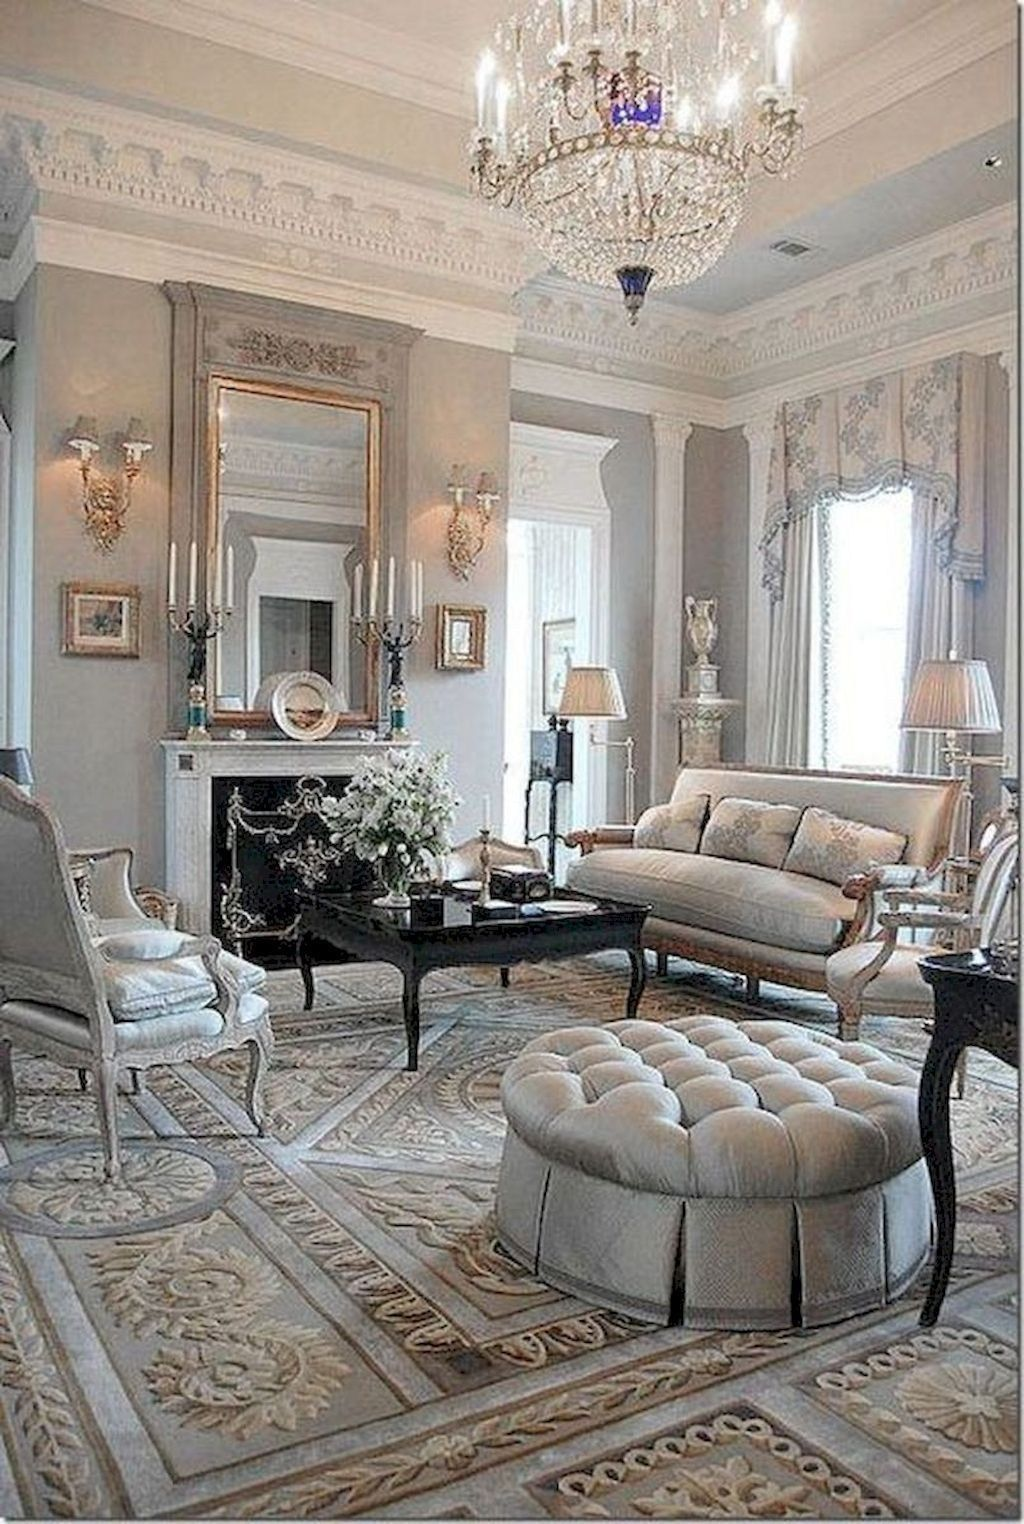 40 Gorgeous French Country Living Room Decor Ideas Popy Home Country Living Room Design French Living Rooms Country Living Room